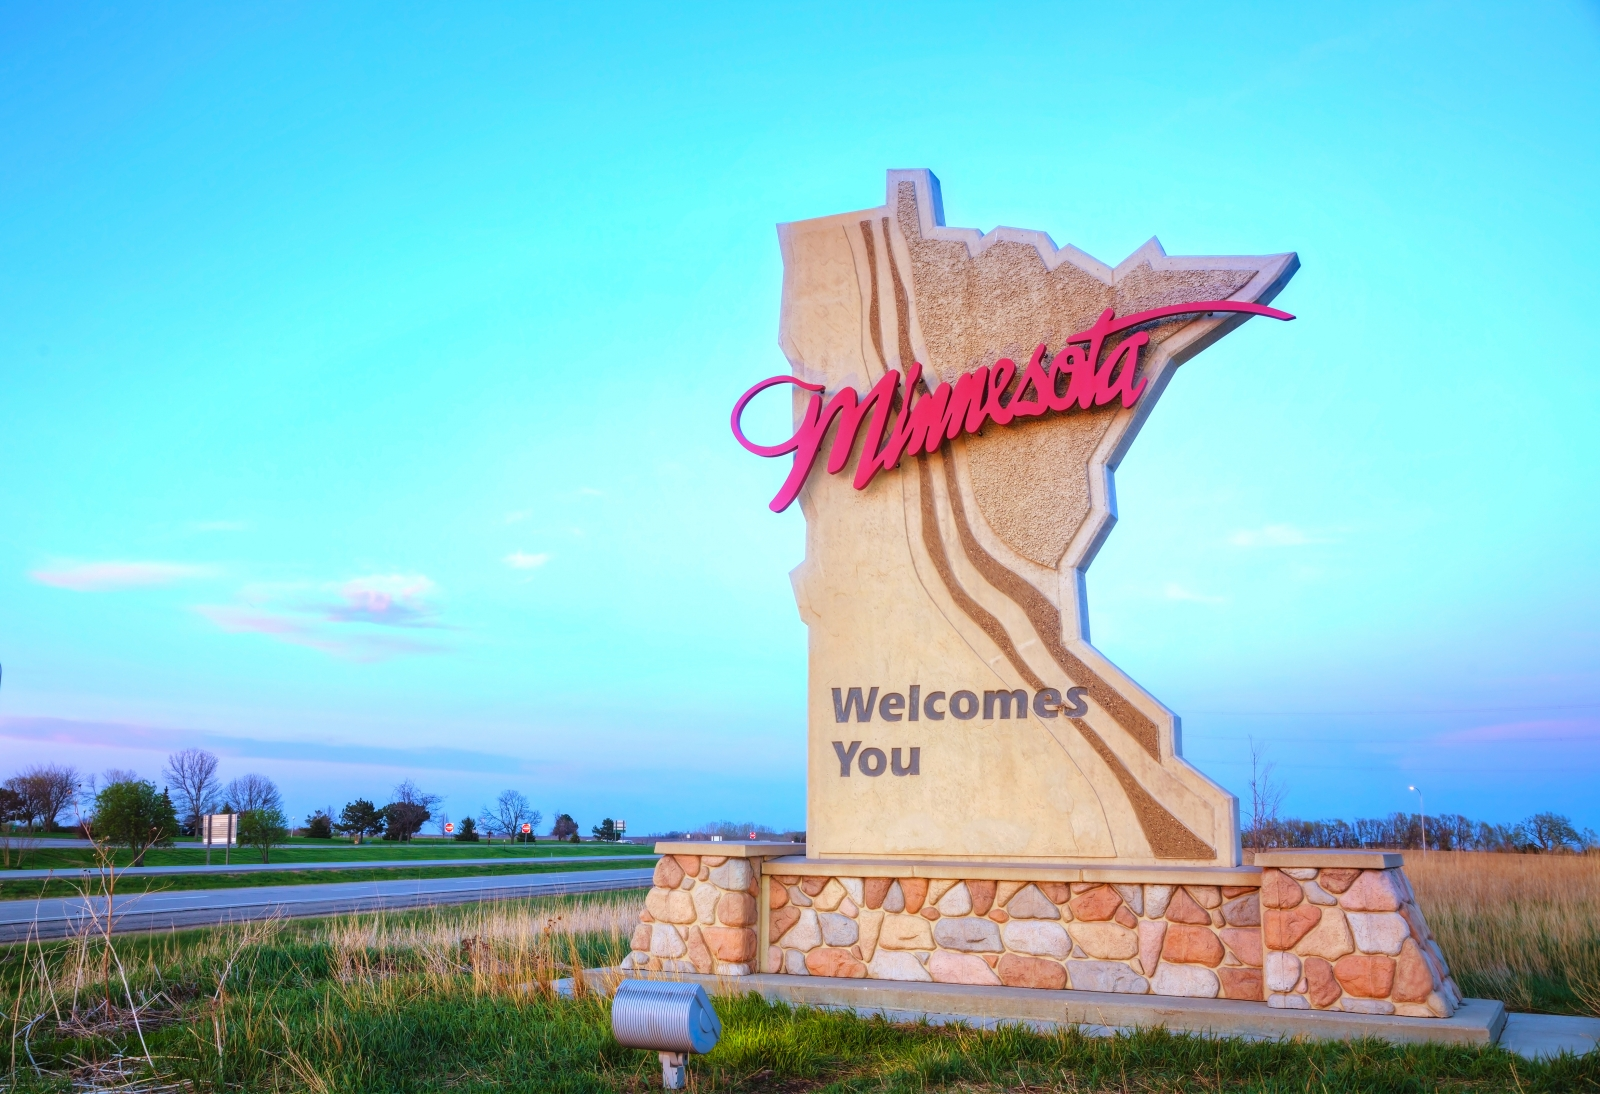 The Welcome to Minnesota sign. Courtesy andreykr/Fotolia.